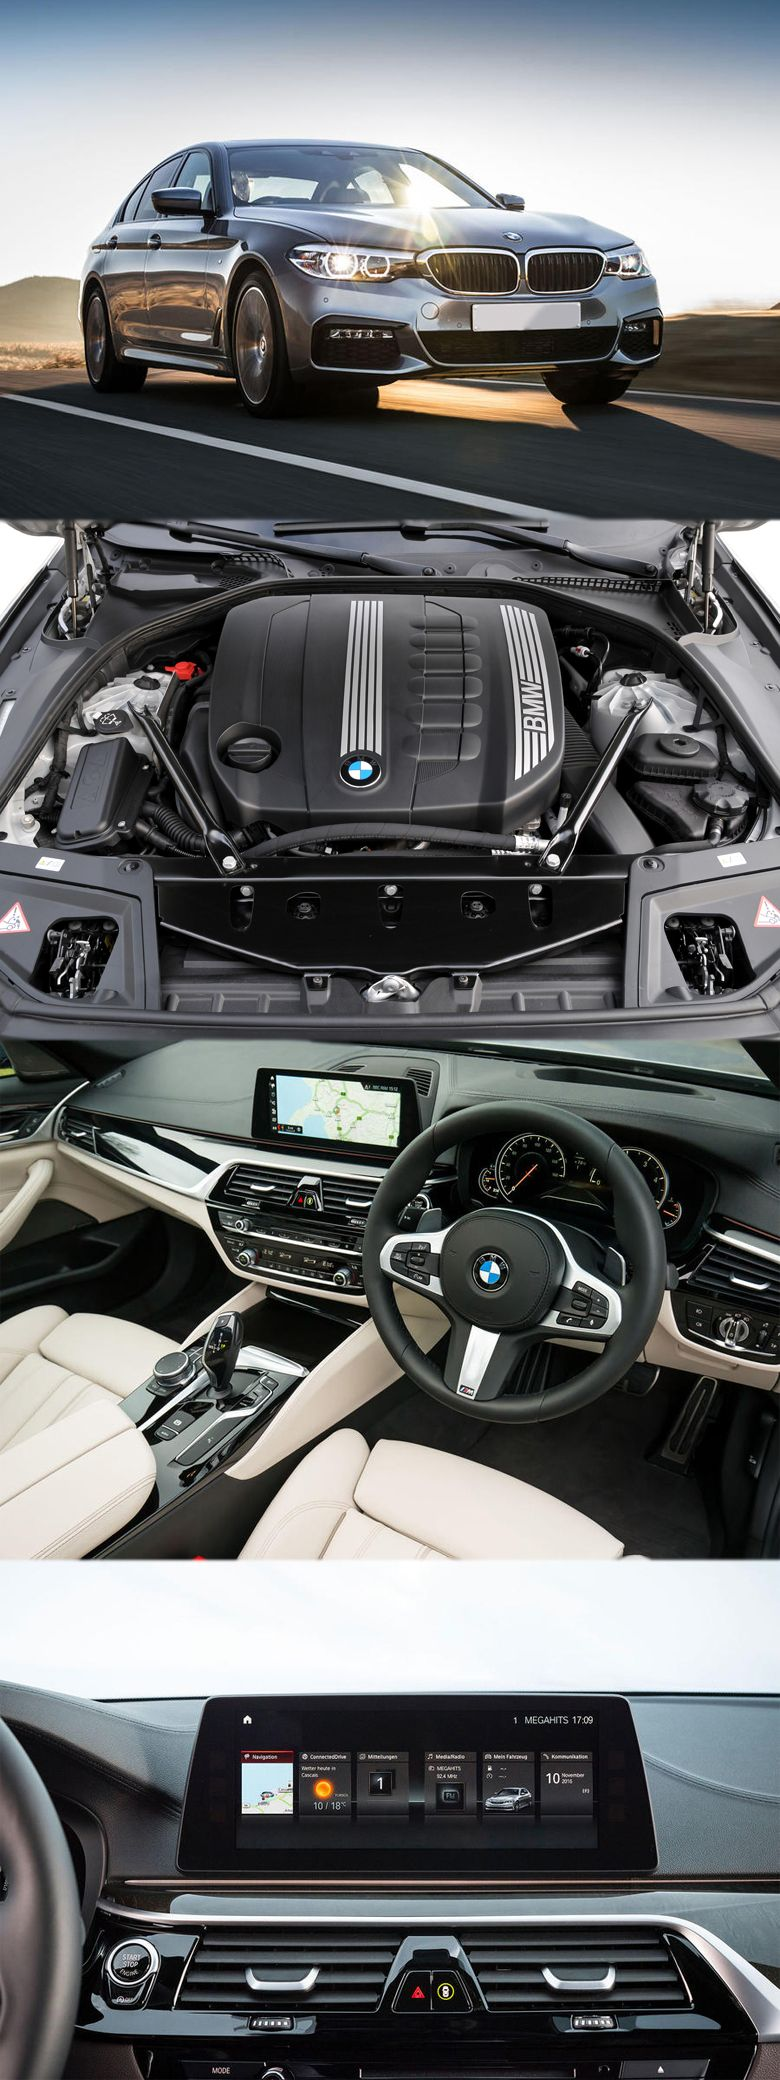 Category Bmw >> Love Of The Road Bmw 530d Https Www Enginetrust Co Uk Blog